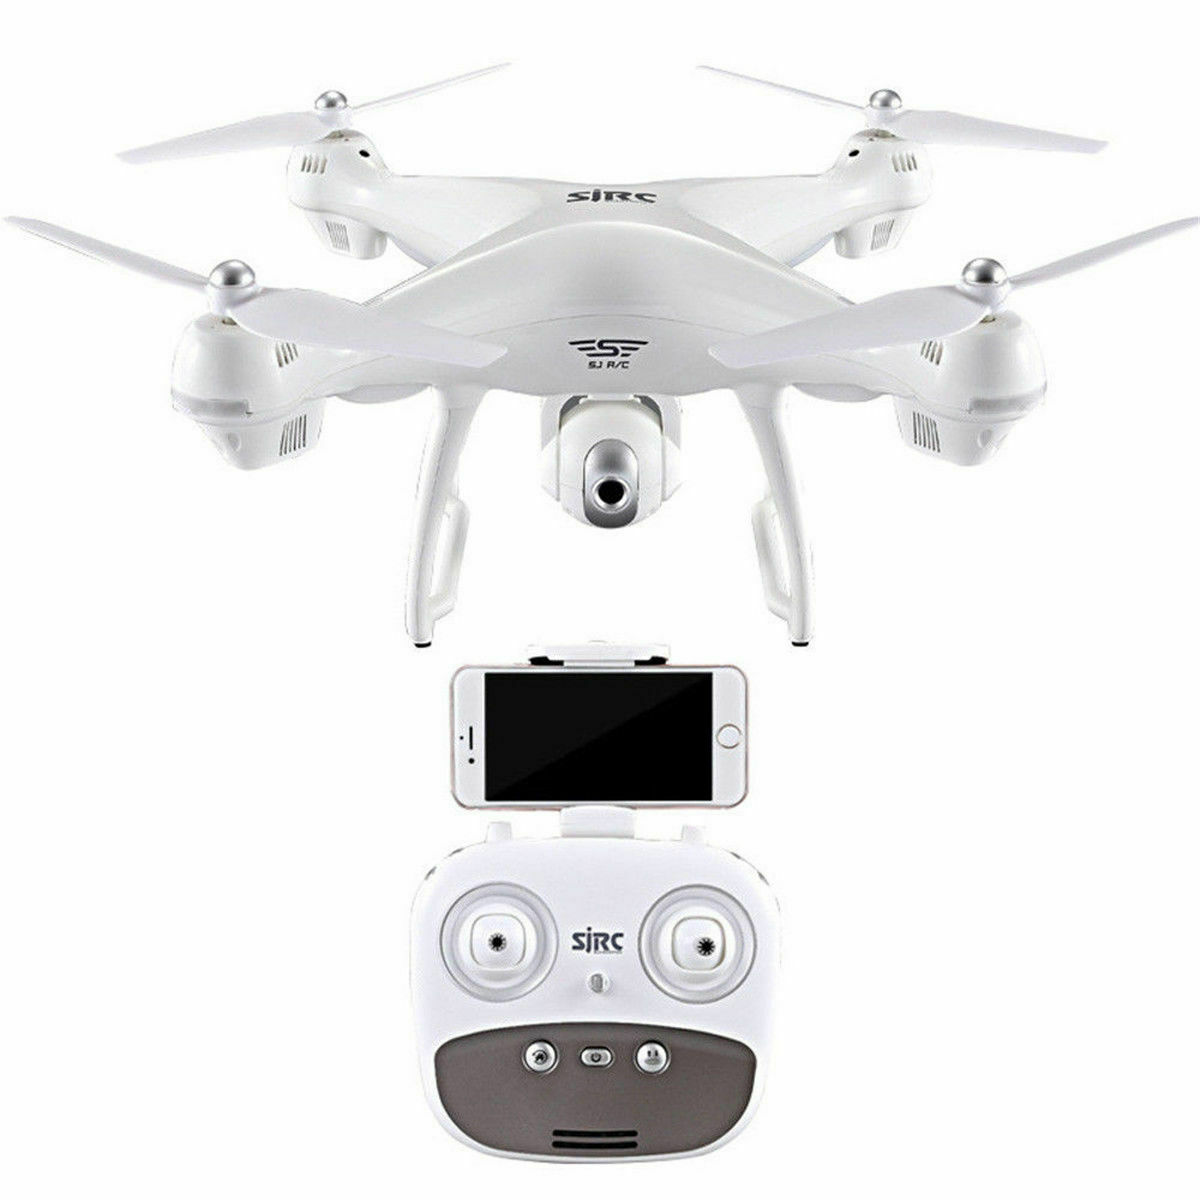 presa S70W GPS LED FPV Drone Quadcopter With With With 1080P HD telecamera Wifi Headless Mode 2.4GHz  negozio online